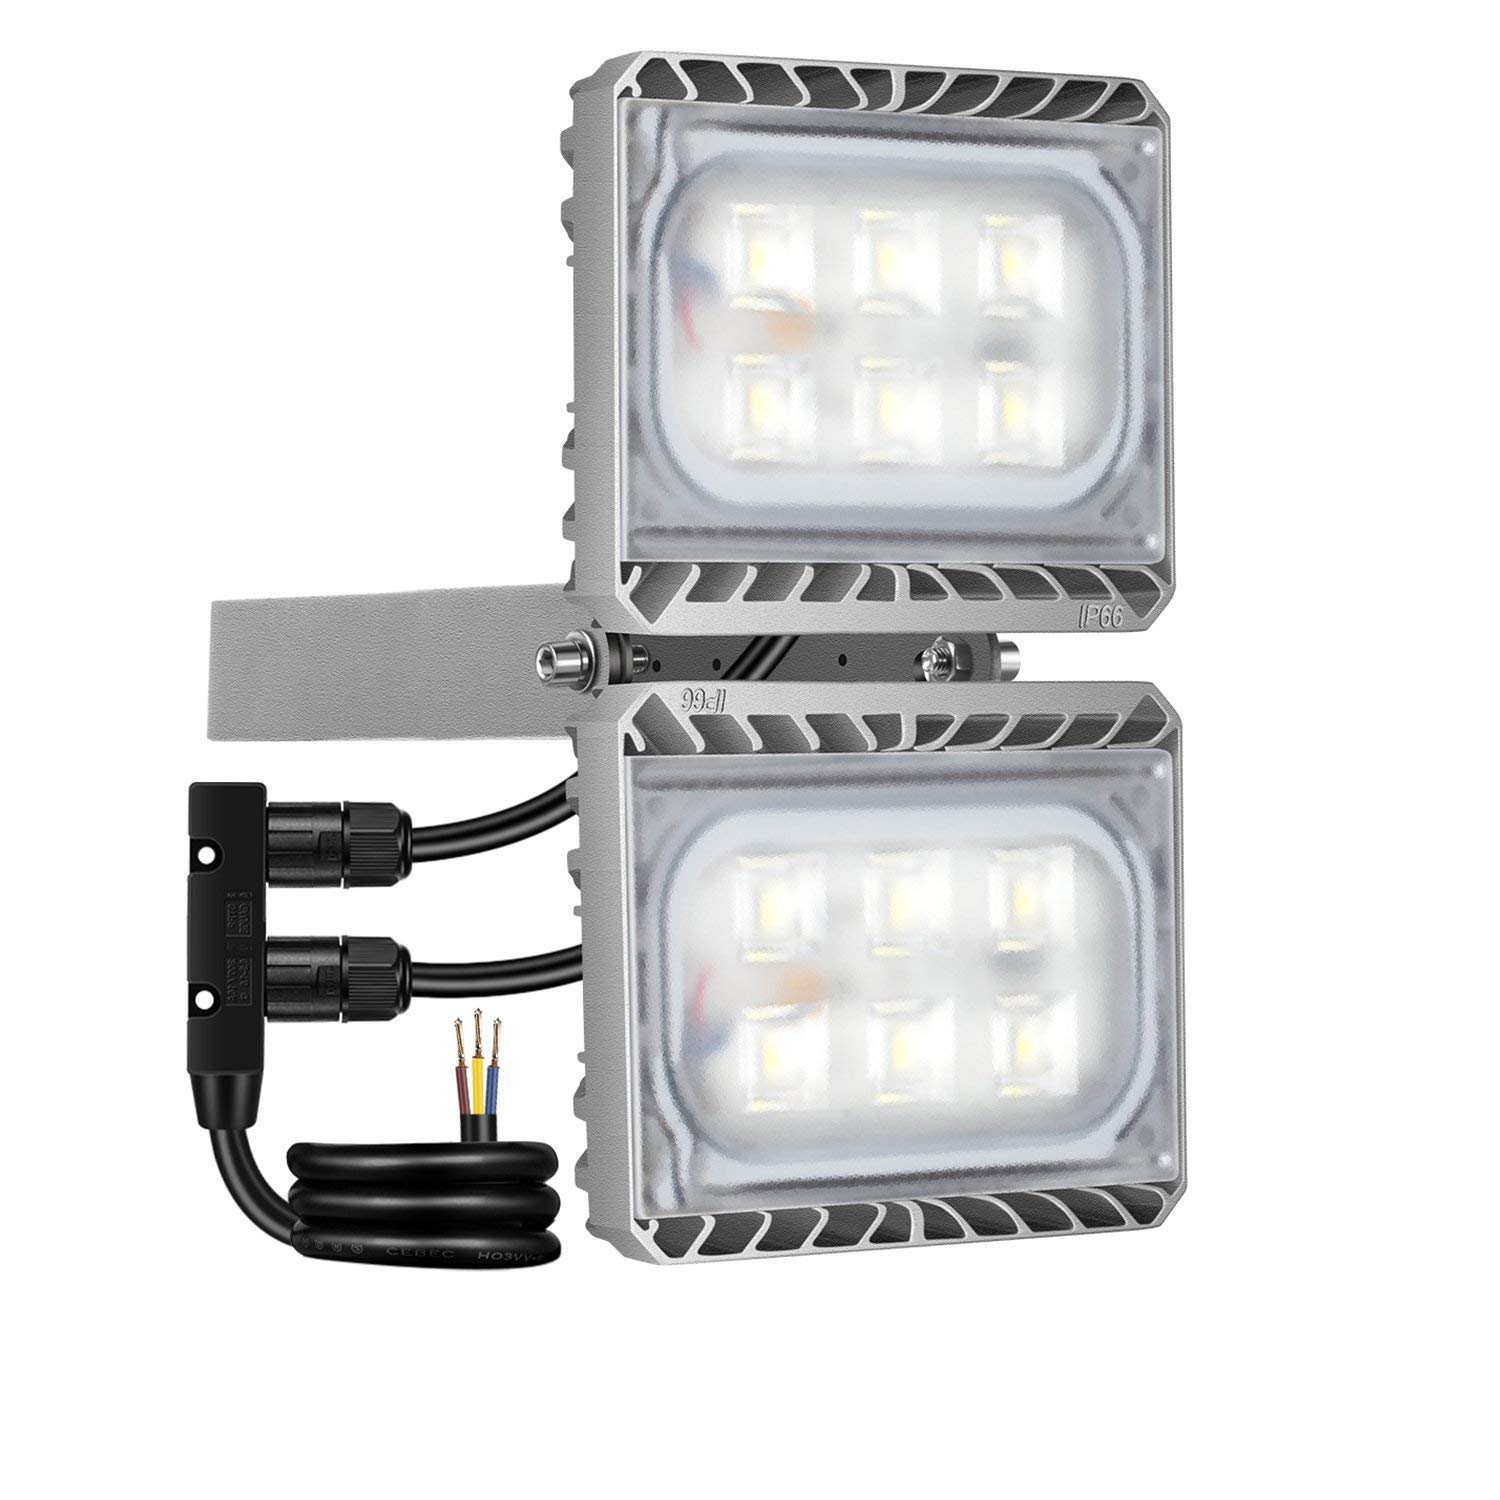 60W LED Flood Light, STASUN 5400lm LED Security Lights Outdoor with Wide Lighting Area, 6000K Daylight, Built with Cree LED Chips, Waterproof, Great for Entryways, Yard, Garage